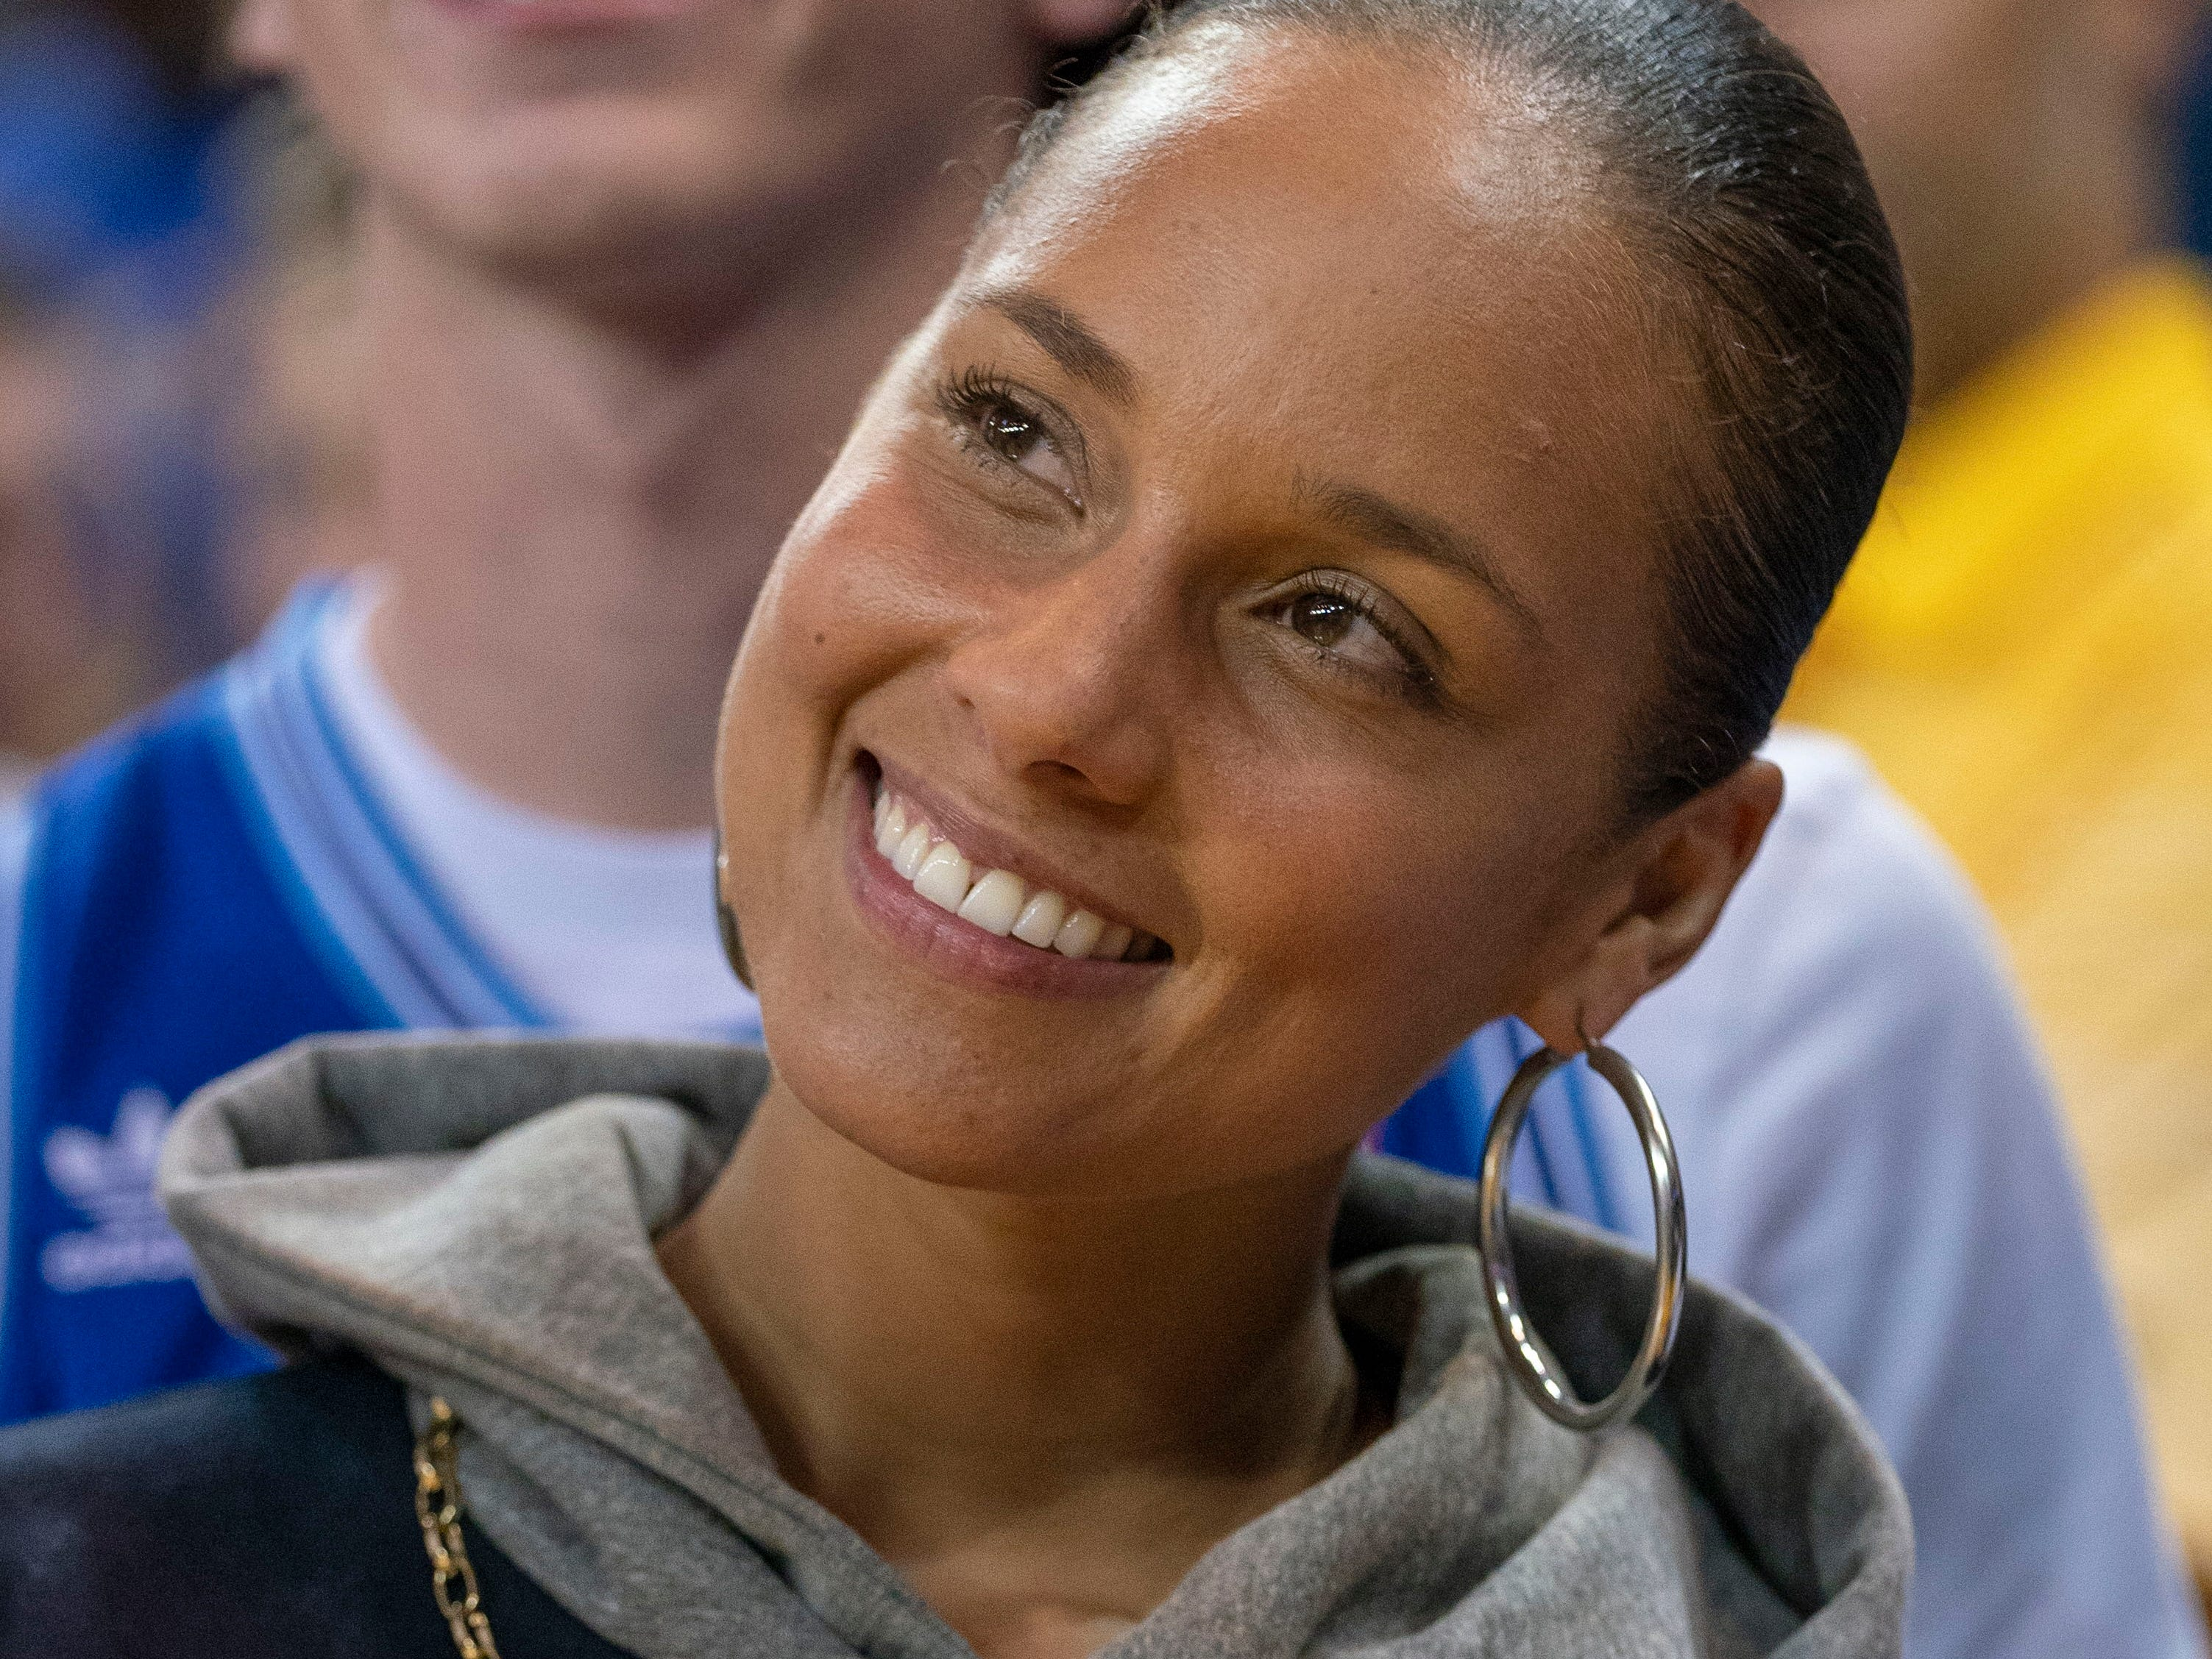 Nov. 2: Grammy Award winner Alicia Keys takes in the Warriors-T'wolves game at Oracle Arena in Oakland.